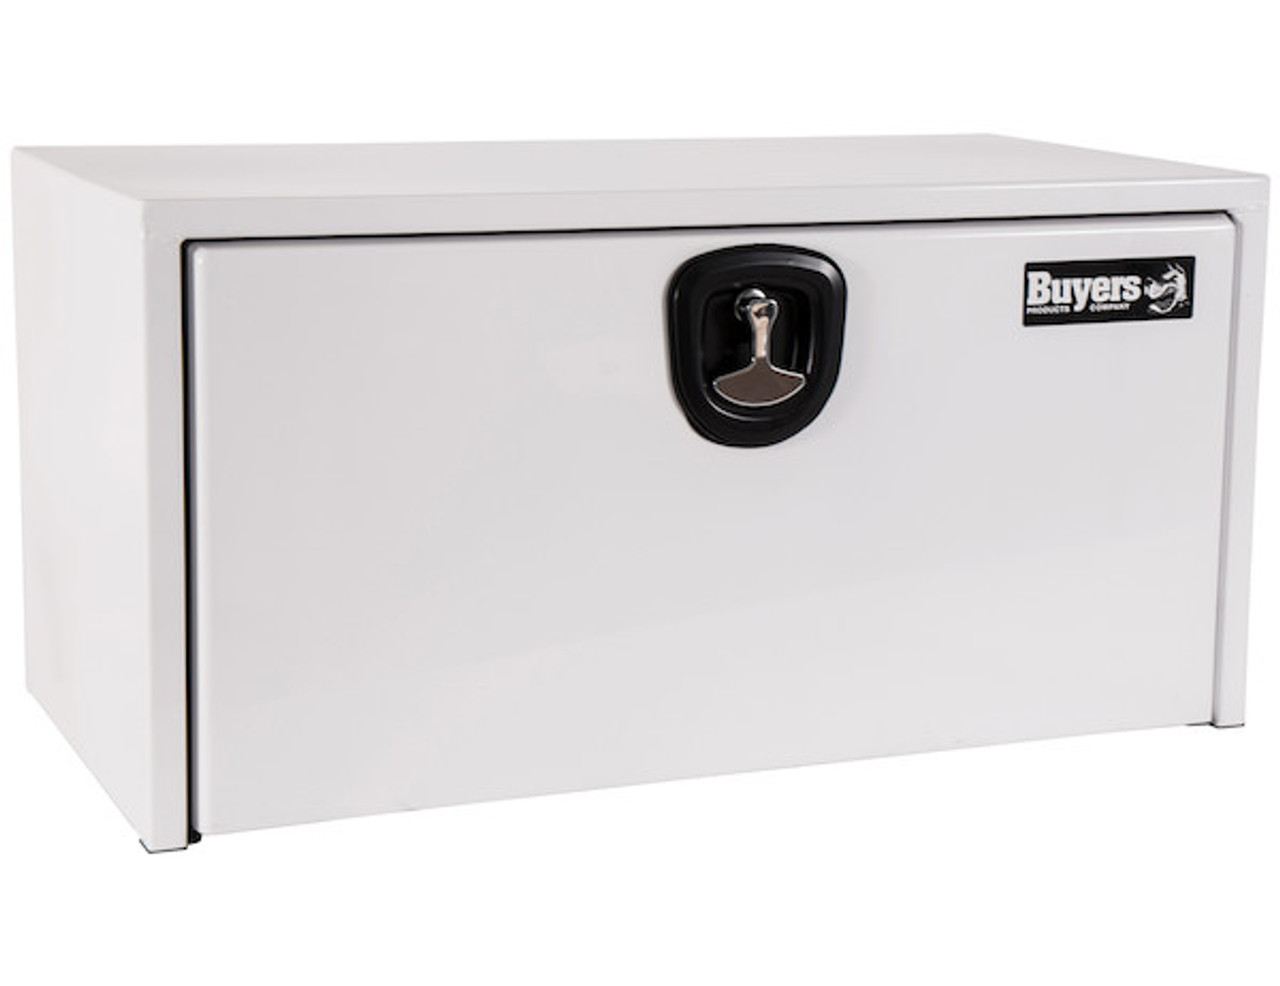 """1732405 BUYERS PRODUCTS WHITE STEEL UNDERBODY TRUCK TOOLBOX WITH 3-POINT LATCH 18""""Hx18""""Dx36""""W"""